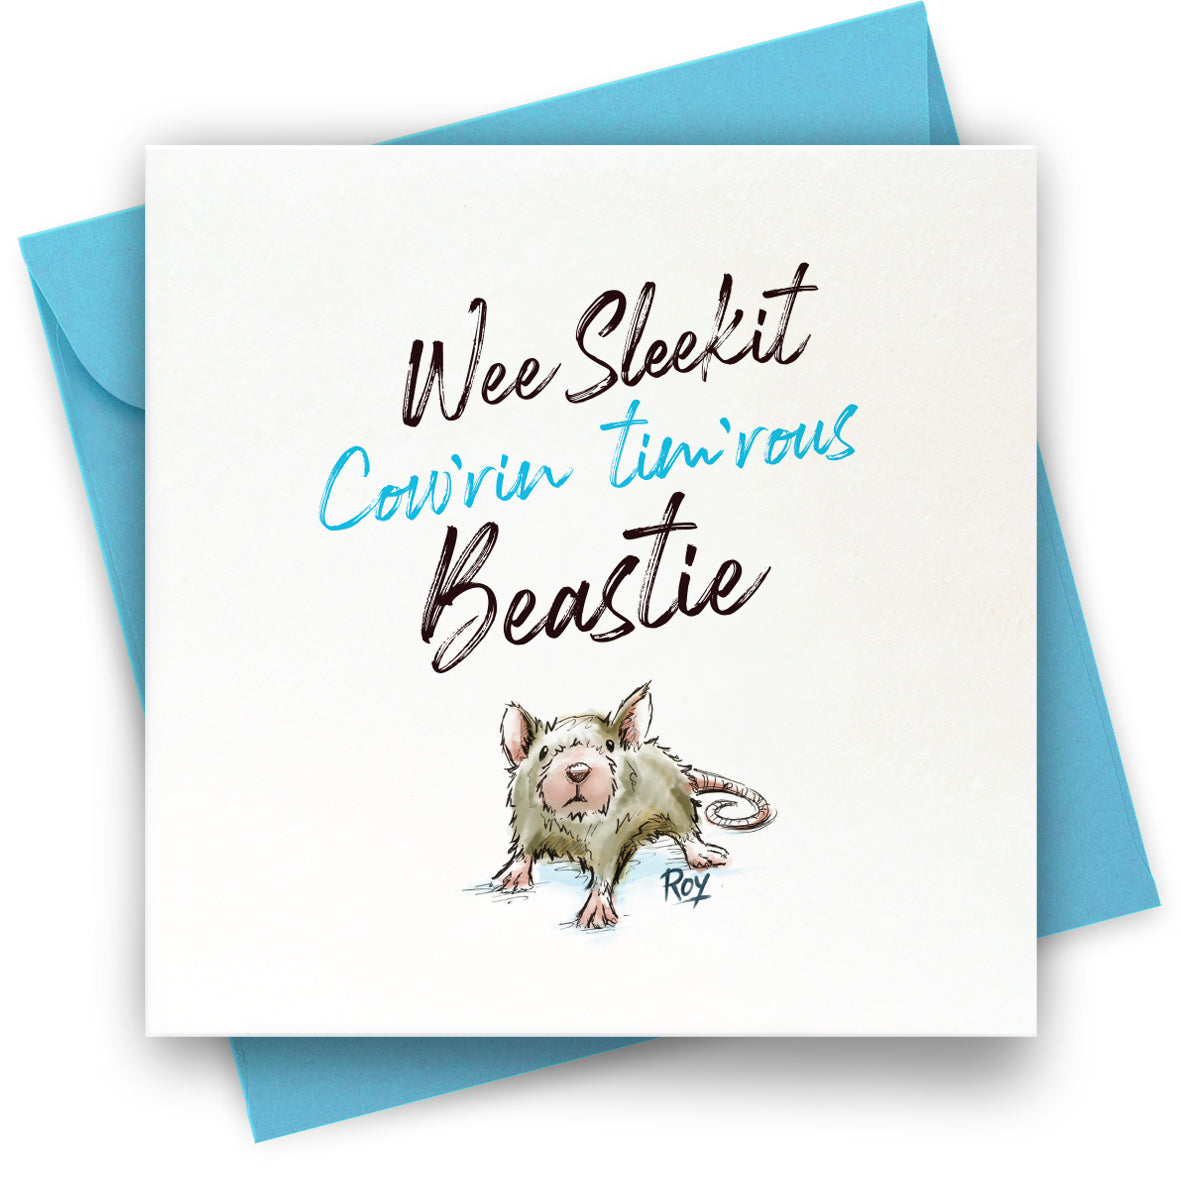 Cow'rin Wee Beastie: Greeting Card